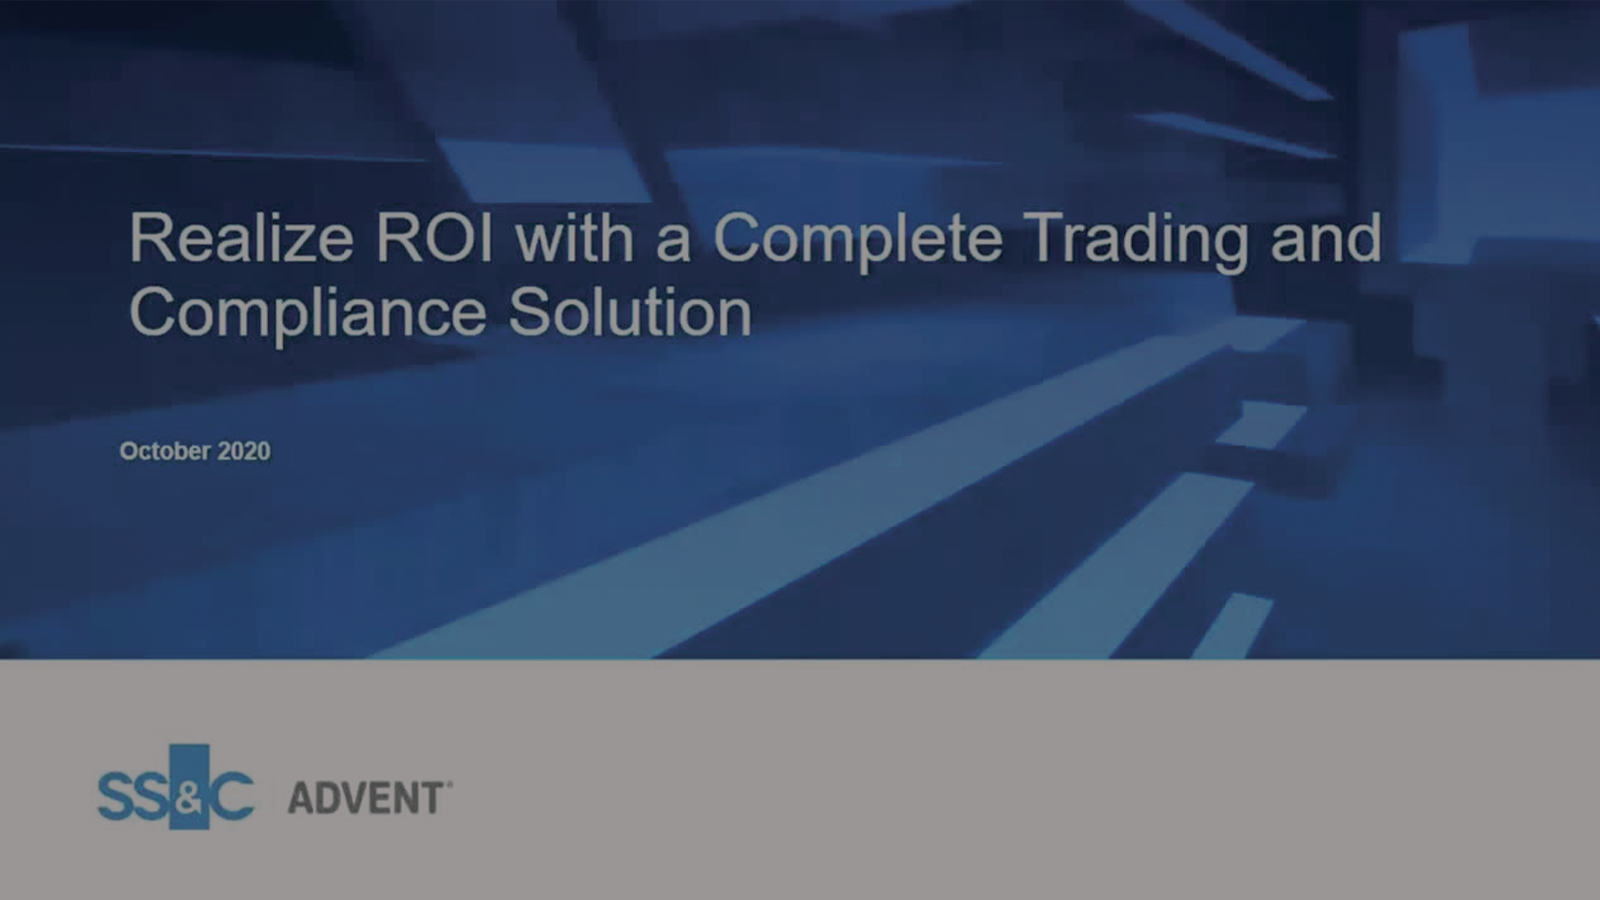 poster image for Realize ROI with a Complete Trading and Compliance Solution